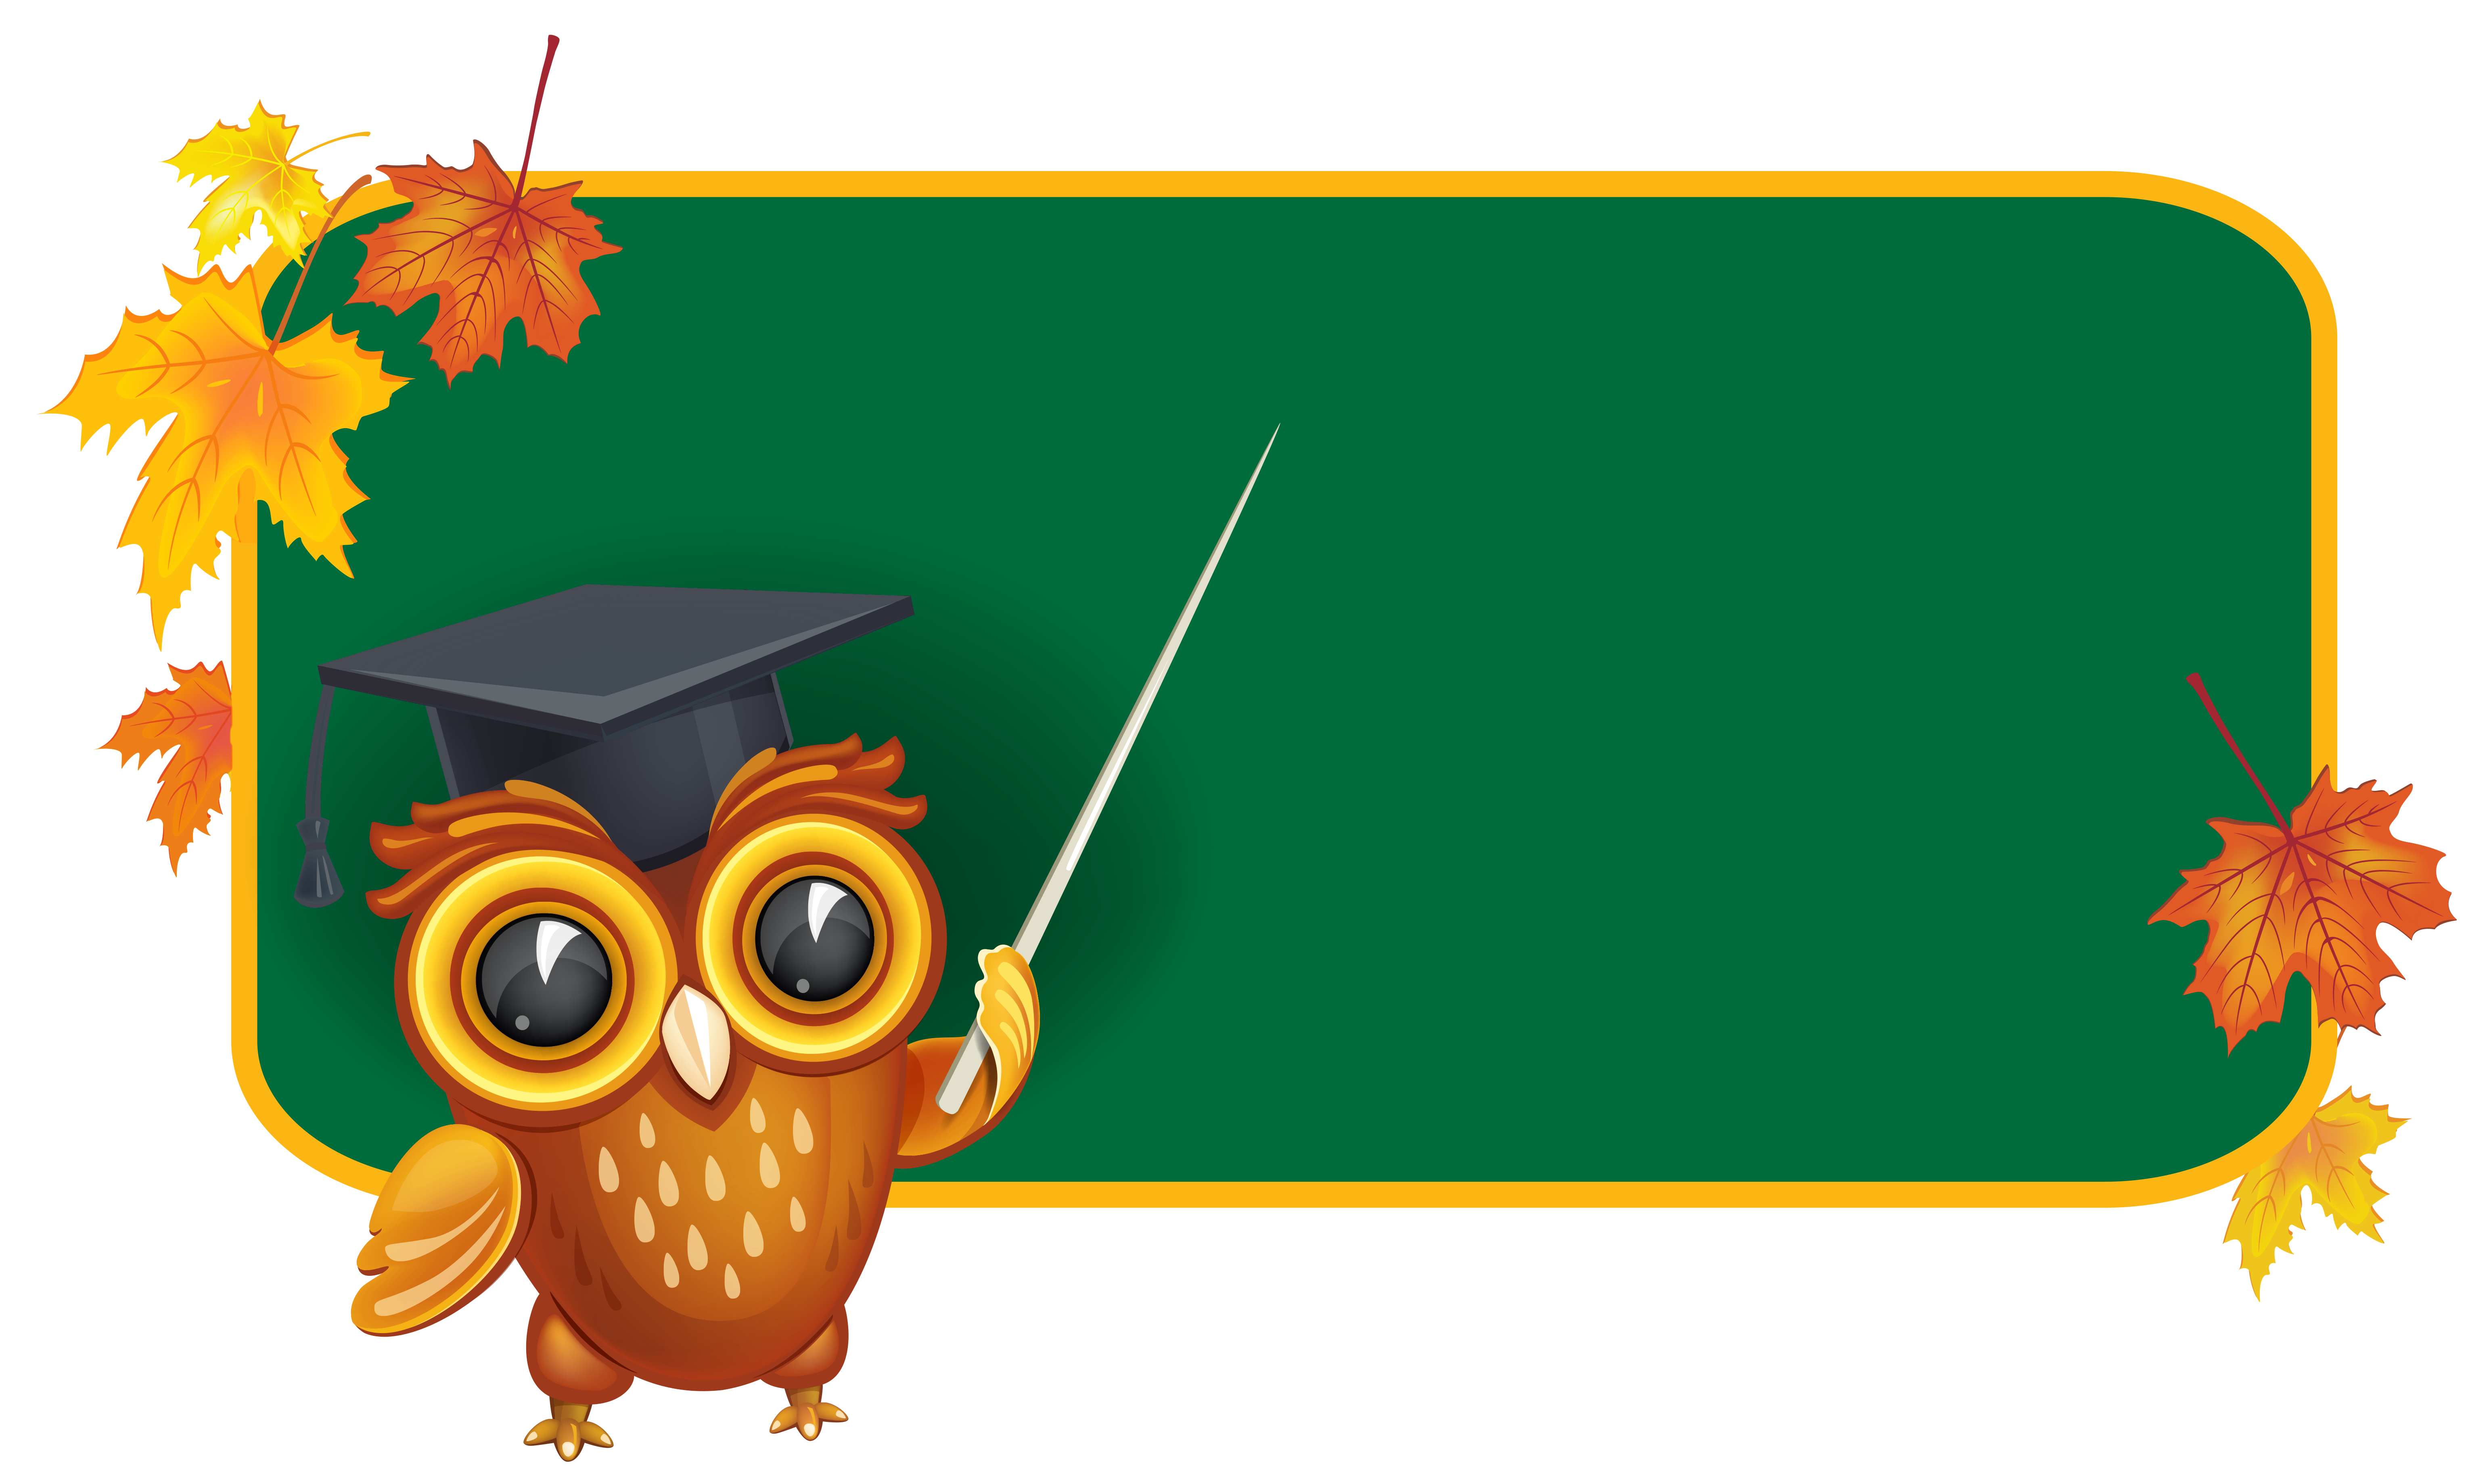 School yard clipart picture royalty free library Owl with School Board PNG Clipart Image | Hinh moi | Pinterest ... picture royalty free library